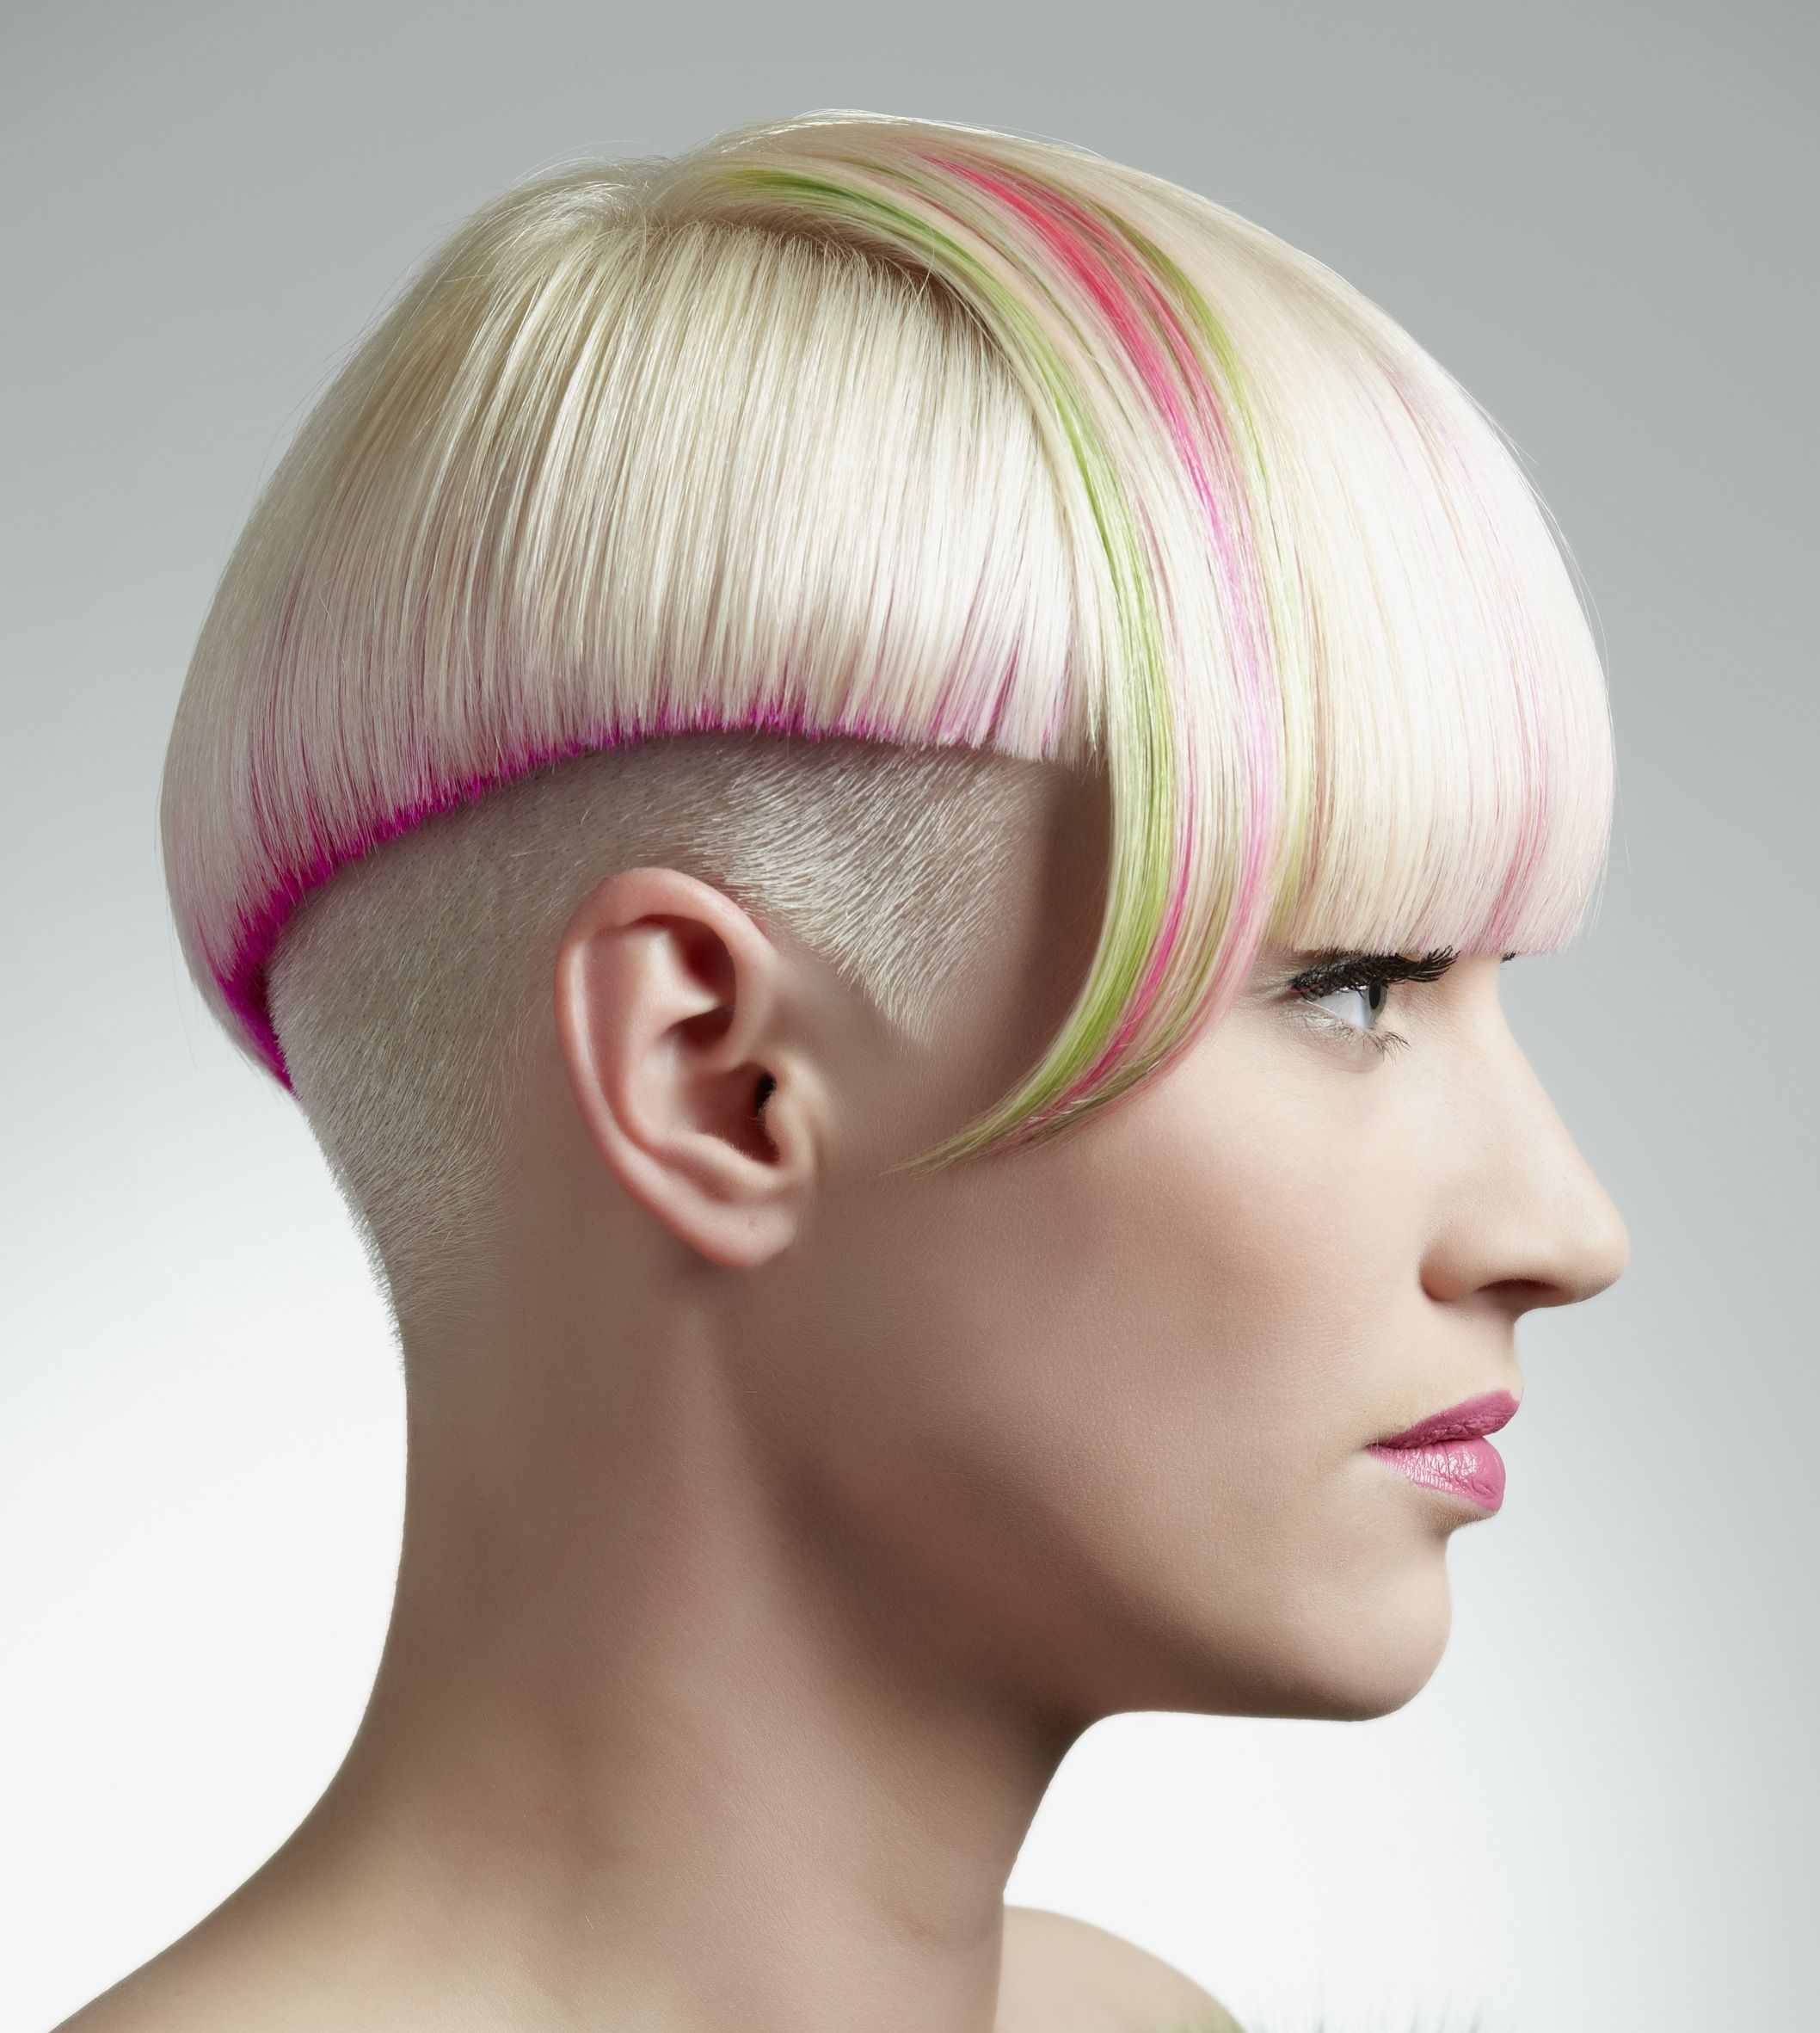 Fabulous Color Design And Haircut By Jannie Hansen The Pink Color